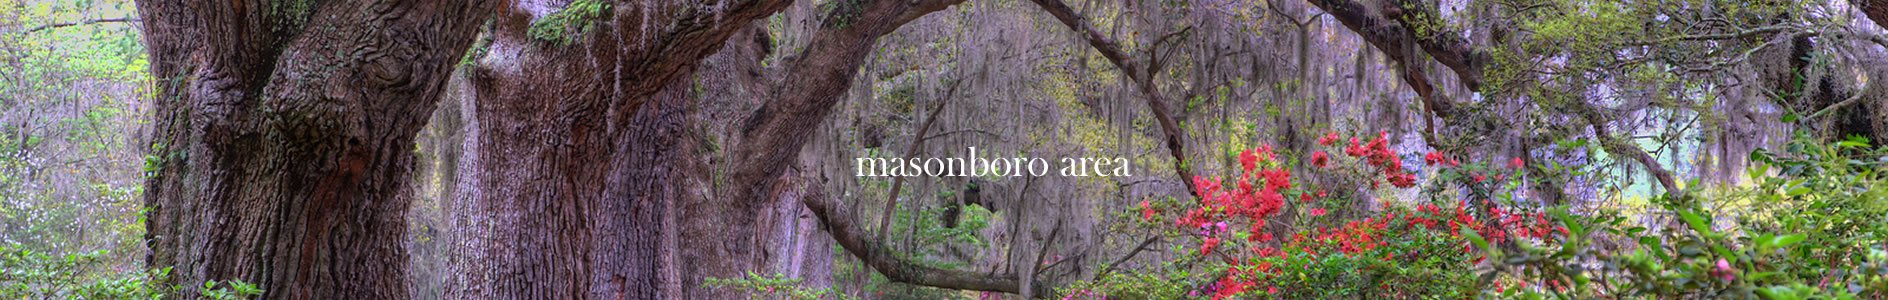 Live Oaks - Masonboro area of Wilmington